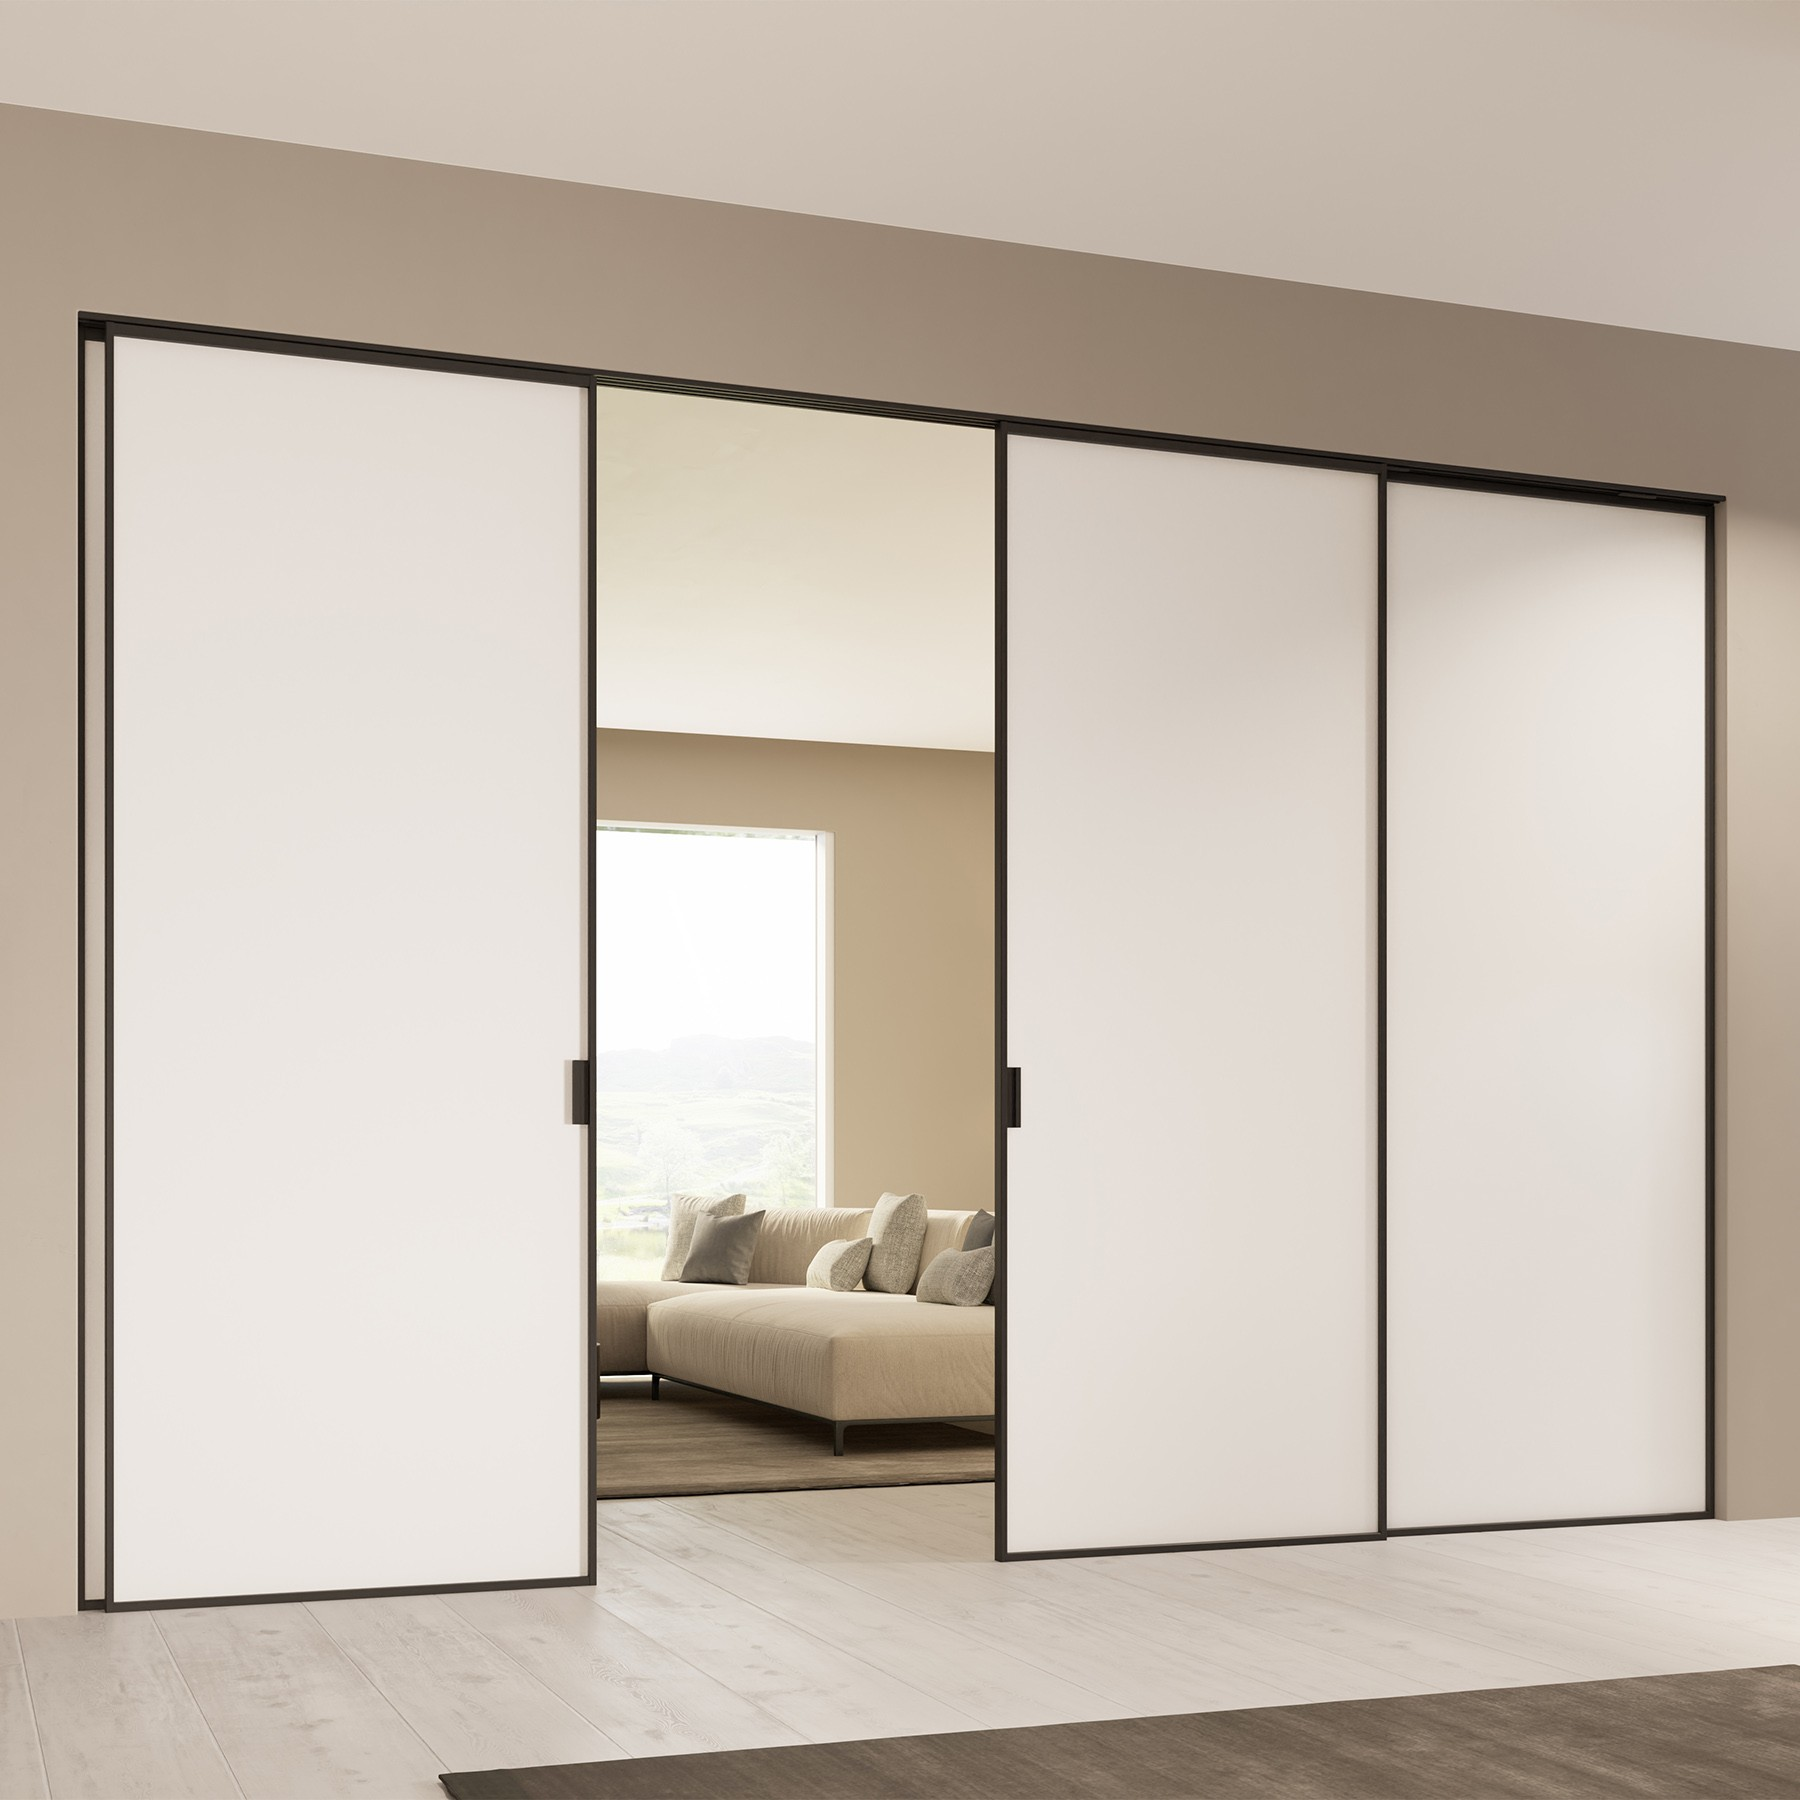 Scenario Delineo with Frosted white glass